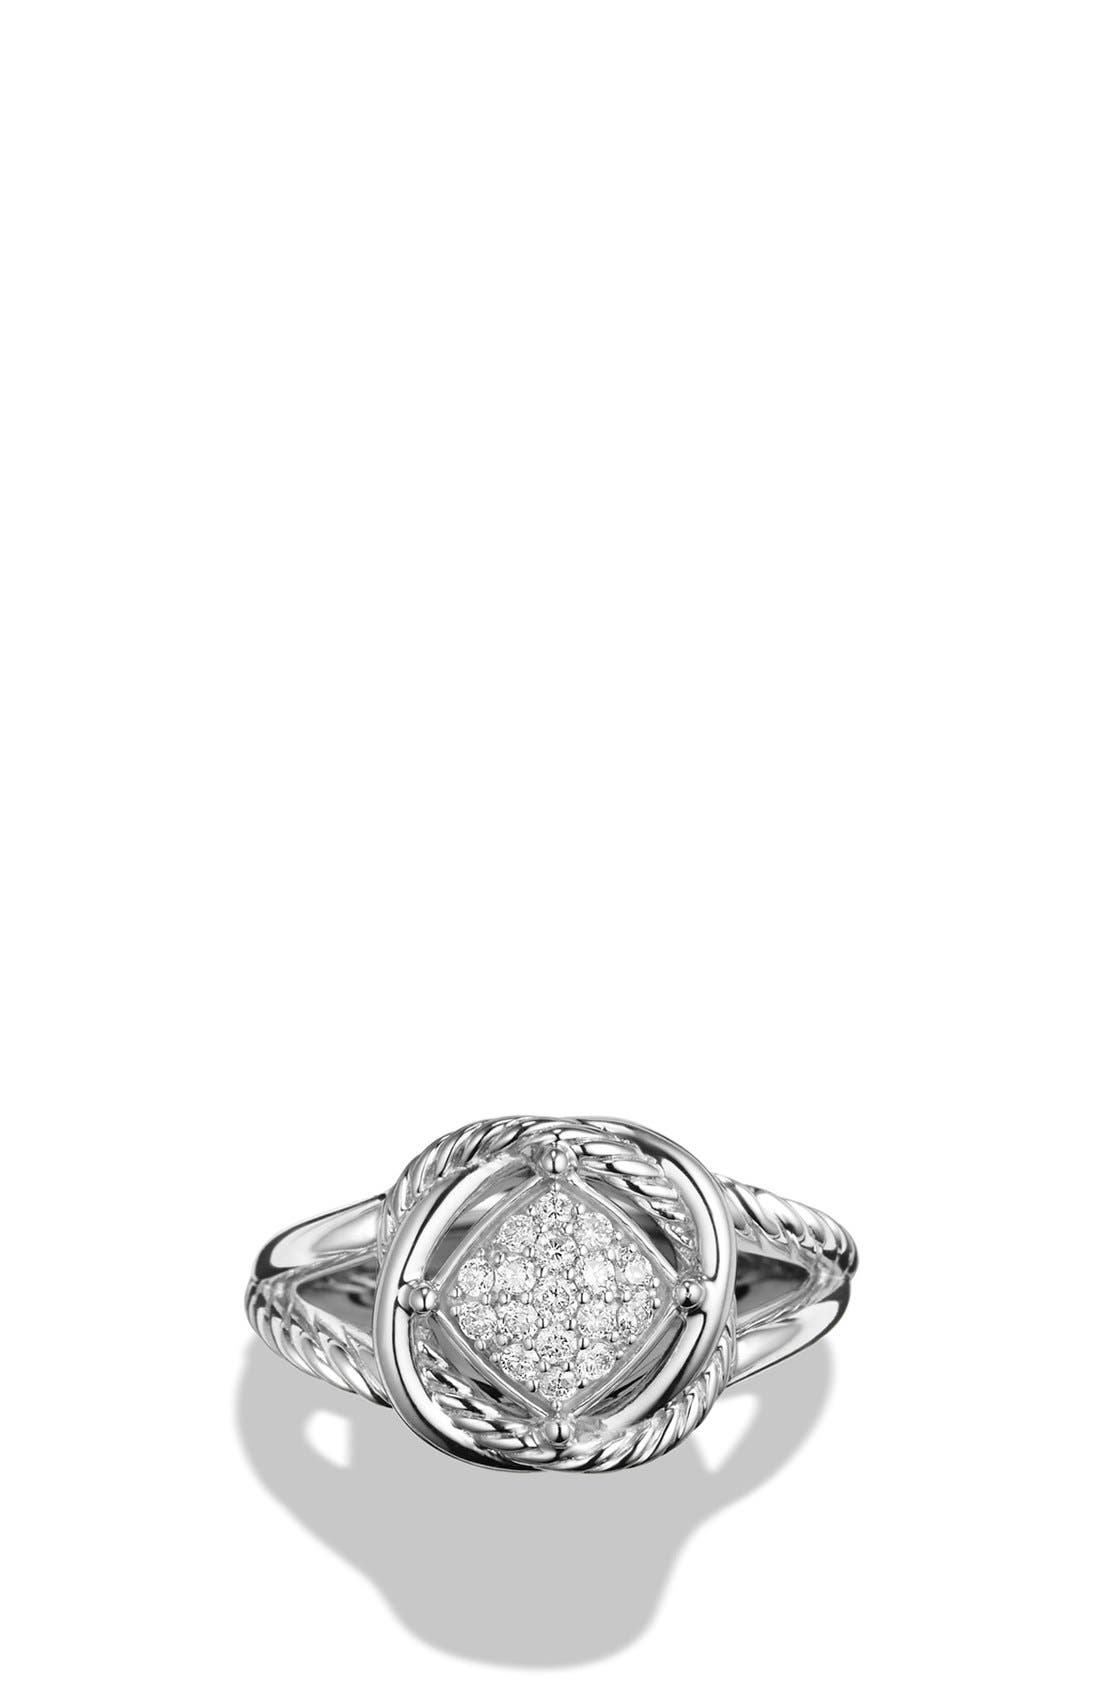 'Infinity' Ring with Diamonds,                             Main thumbnail 1, color,                             DIAMOND